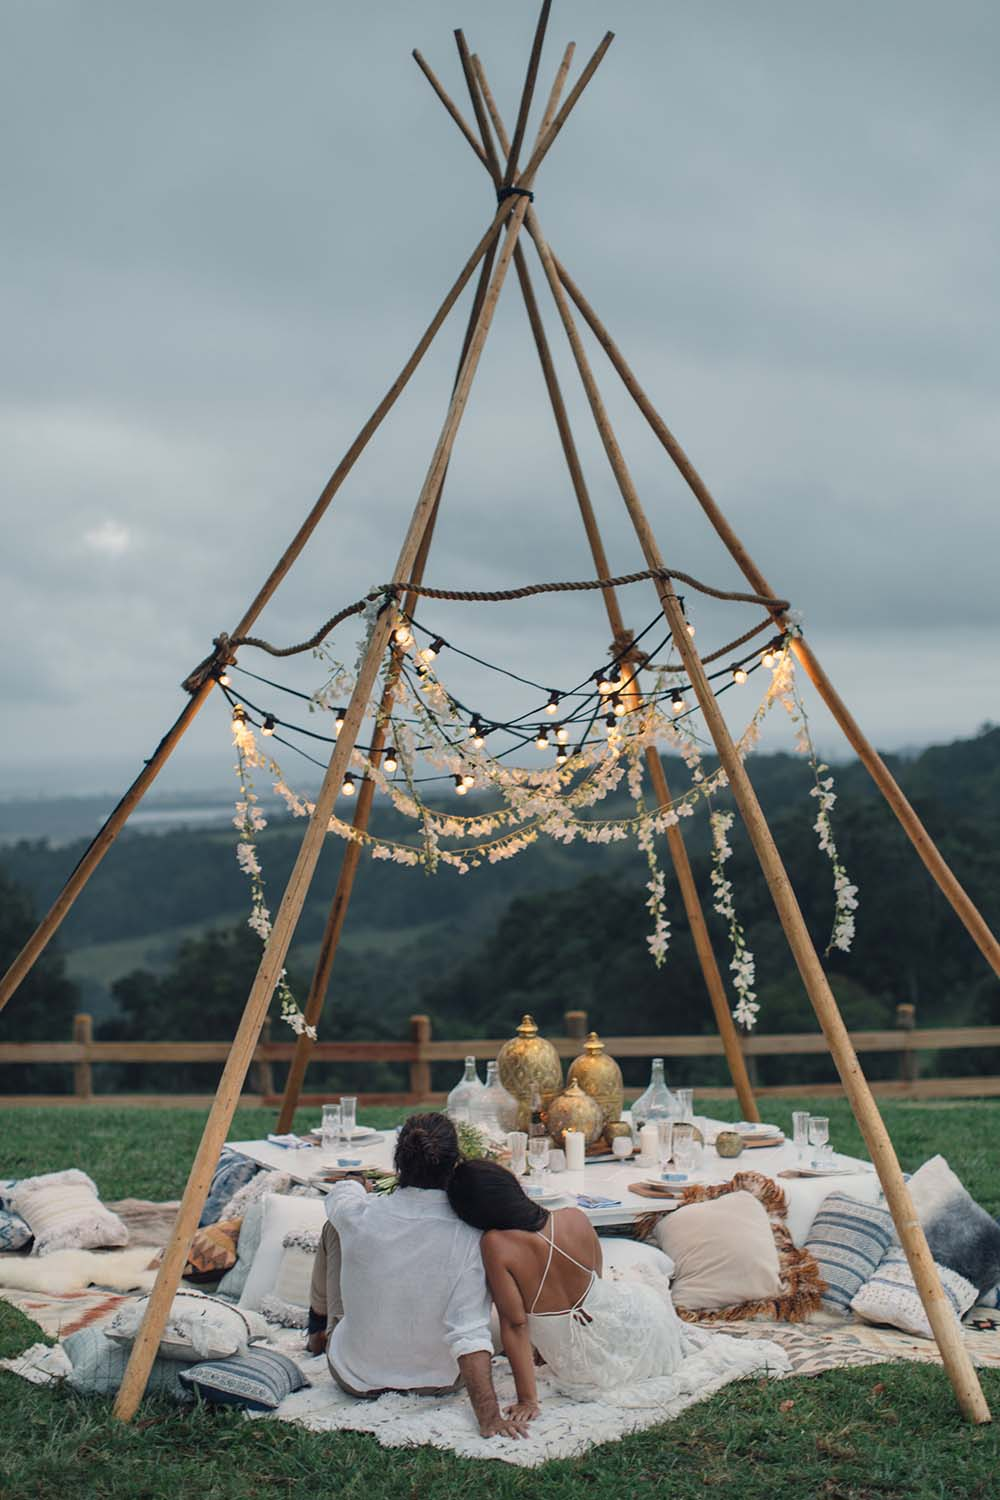 At Dusk Tweed Hinterland Styled Shoot Bramblewood Farm | The Events Lounge - Gold Coast Wedding Planner and Stylist - www.theeventslounge.com.au